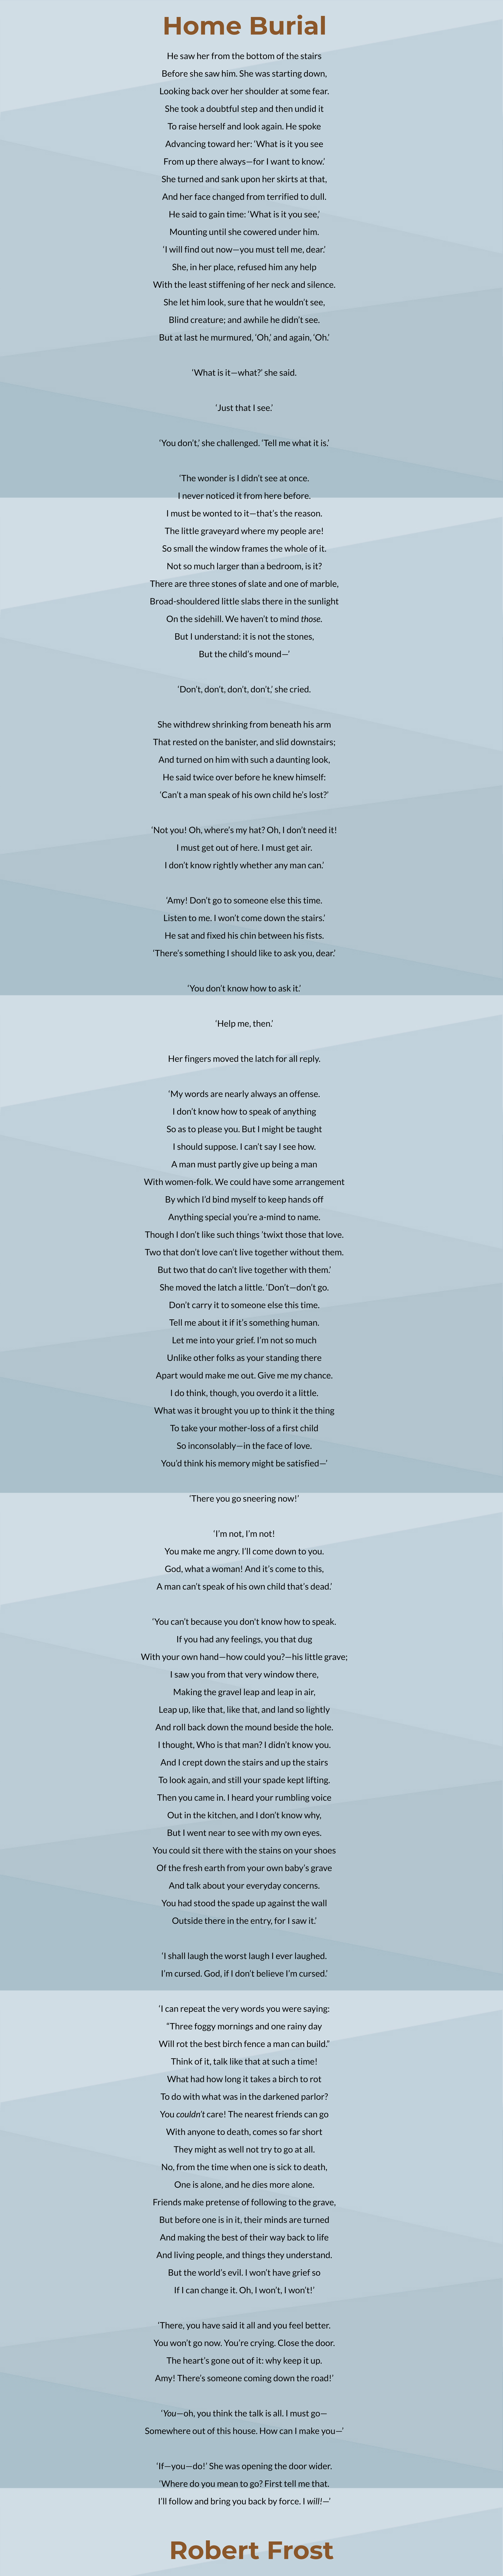 Home Burial Poem By Robert Frost Wise Summary Of The Ozymandia Shelley